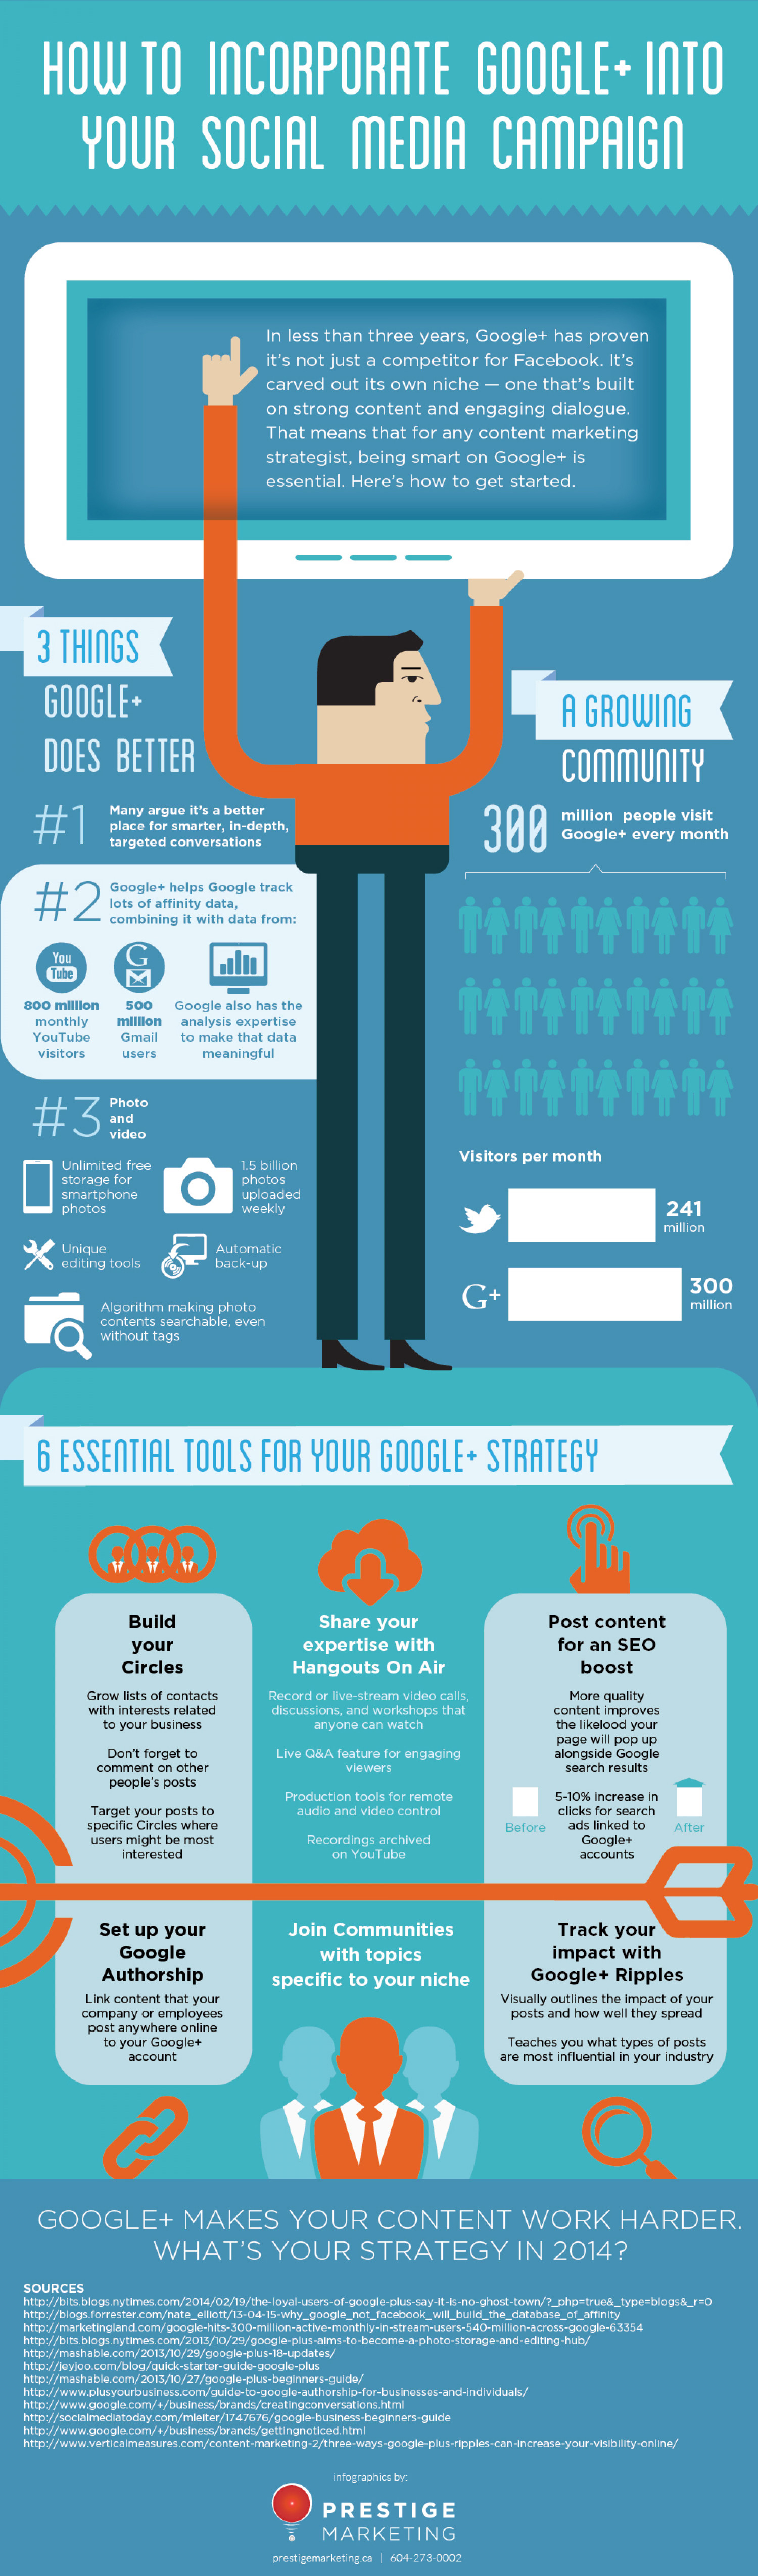 How To Incorporate Google+ Into Your Social Media Campaign Infographic